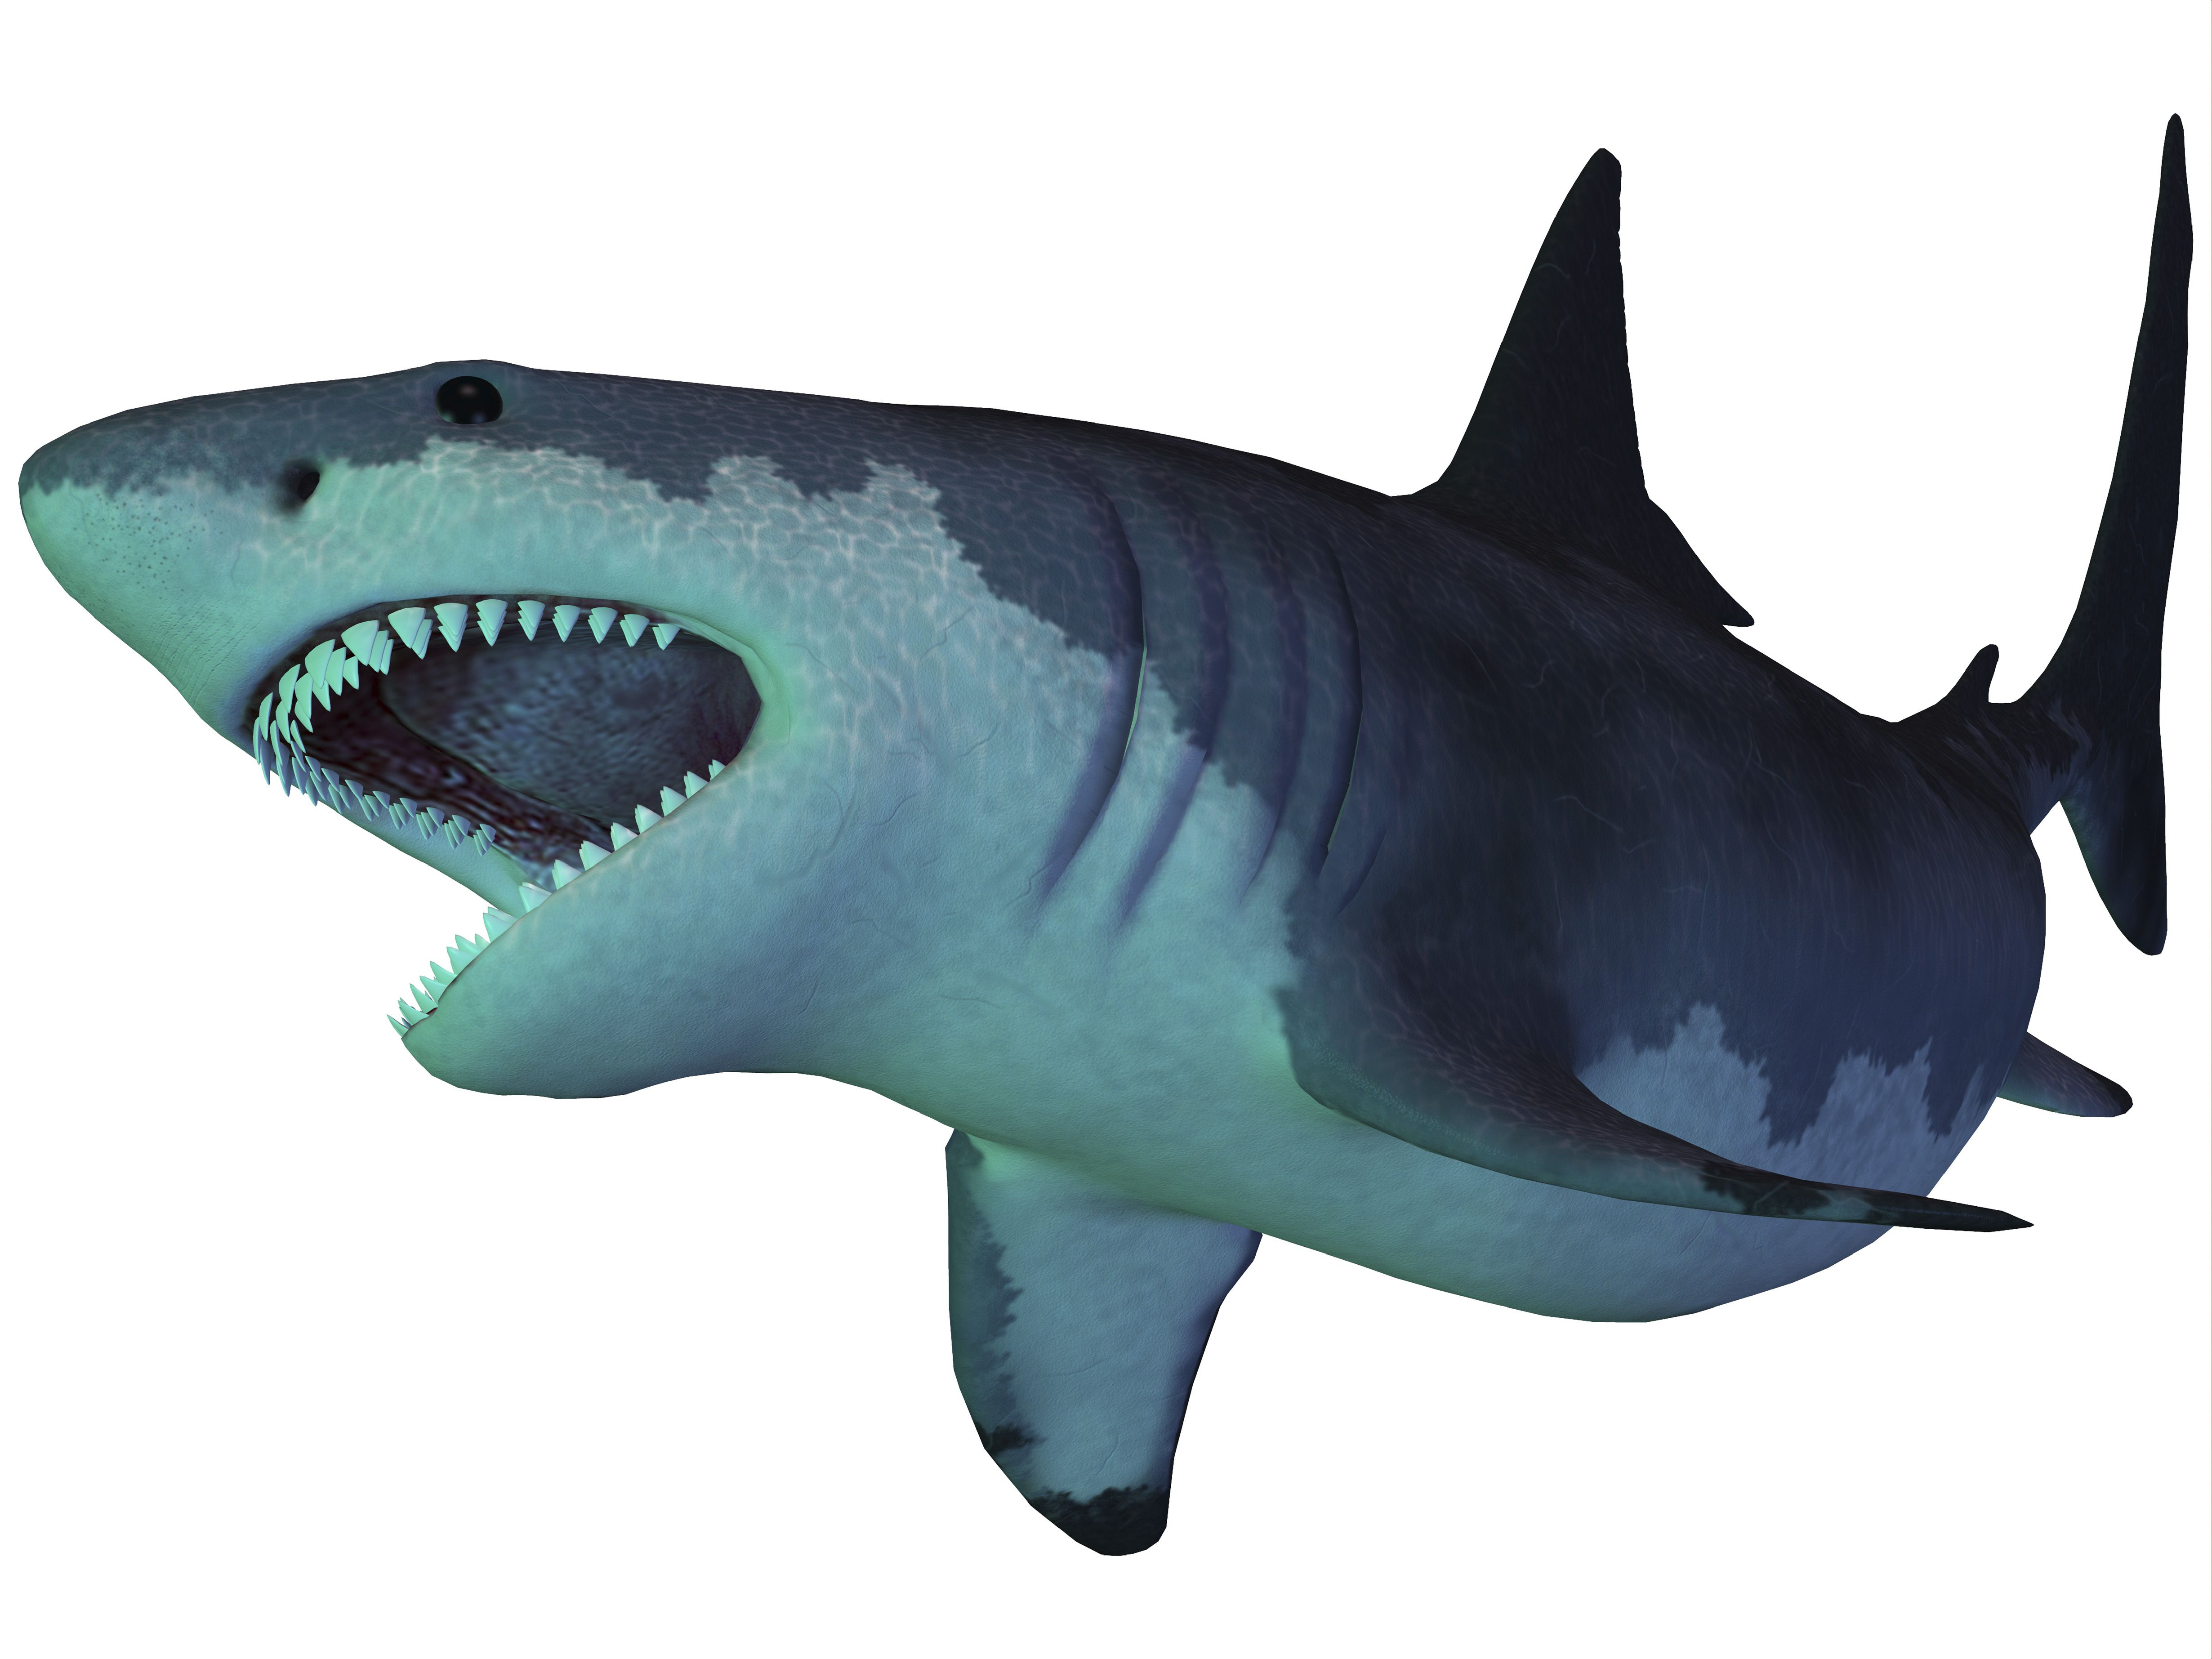 The Megalodon shark is an extinct megatoothed shark that existed in prehistoric times, from the Oligocene to the Pleistocene Epochs